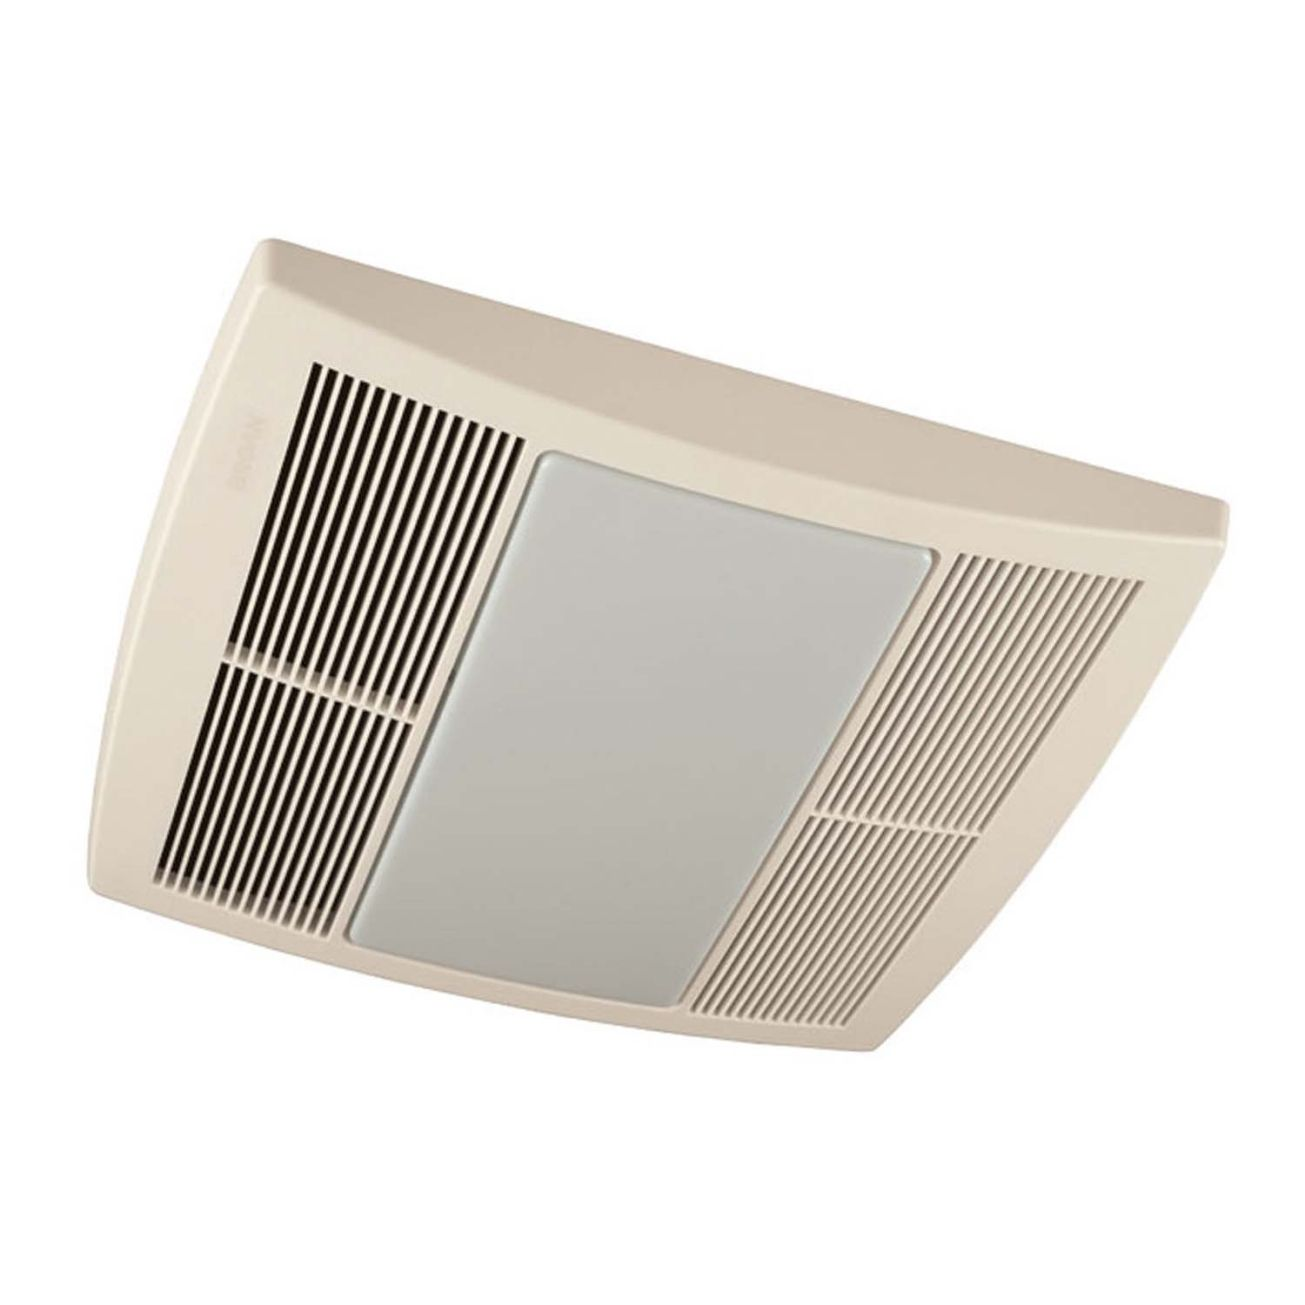 Exhaust fan covers for bathroom - Broan Bathroom Fan Light Cover Bathroom Exhaust Fan Fixtures Are Just As Significant As Many Other Features In That Toilet